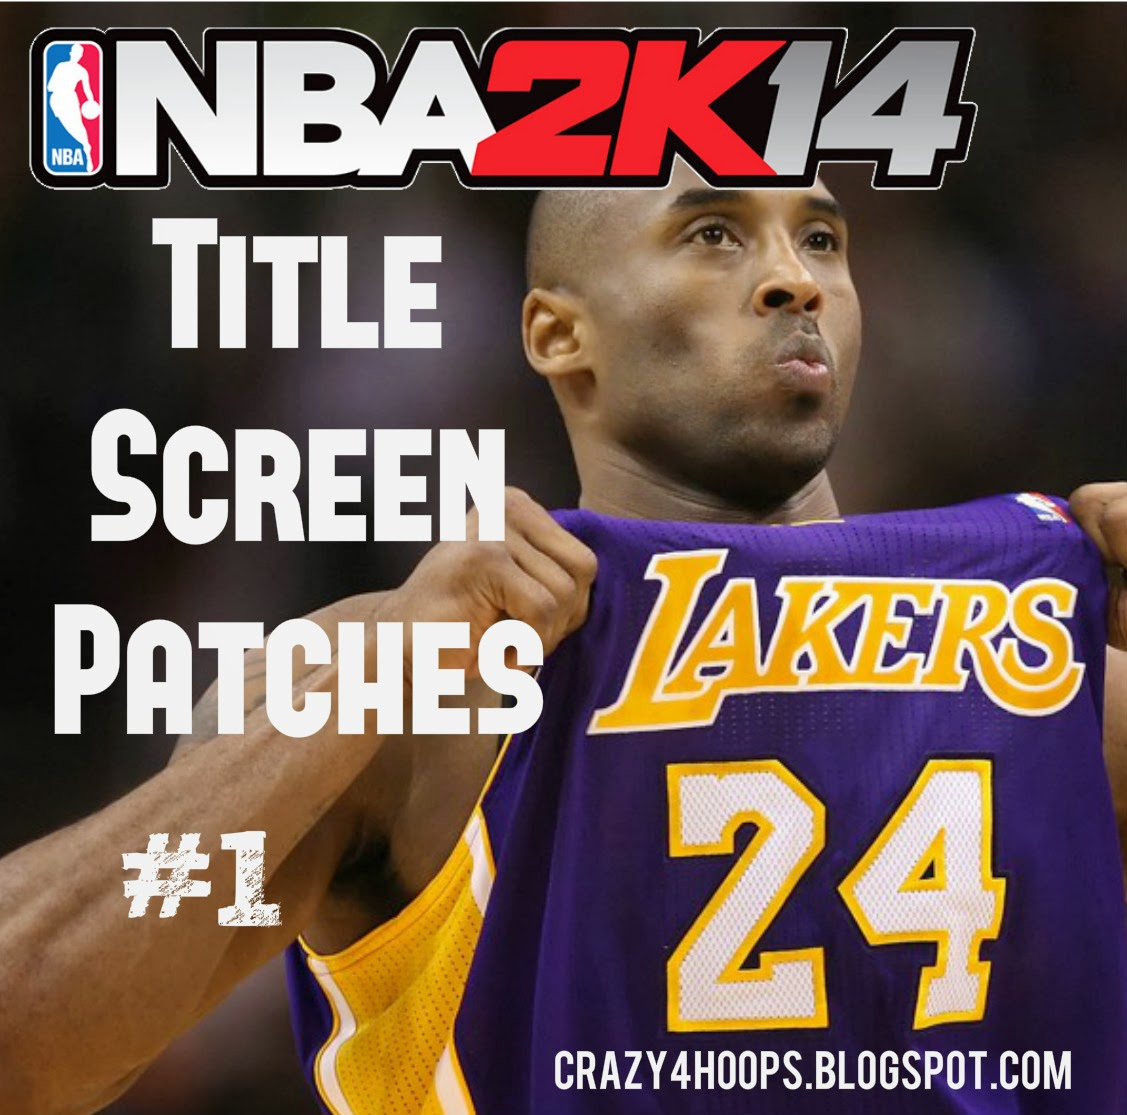 36b56513d28 NBA 2k14 Title Screen Patches Download  1 - HoopsVilla